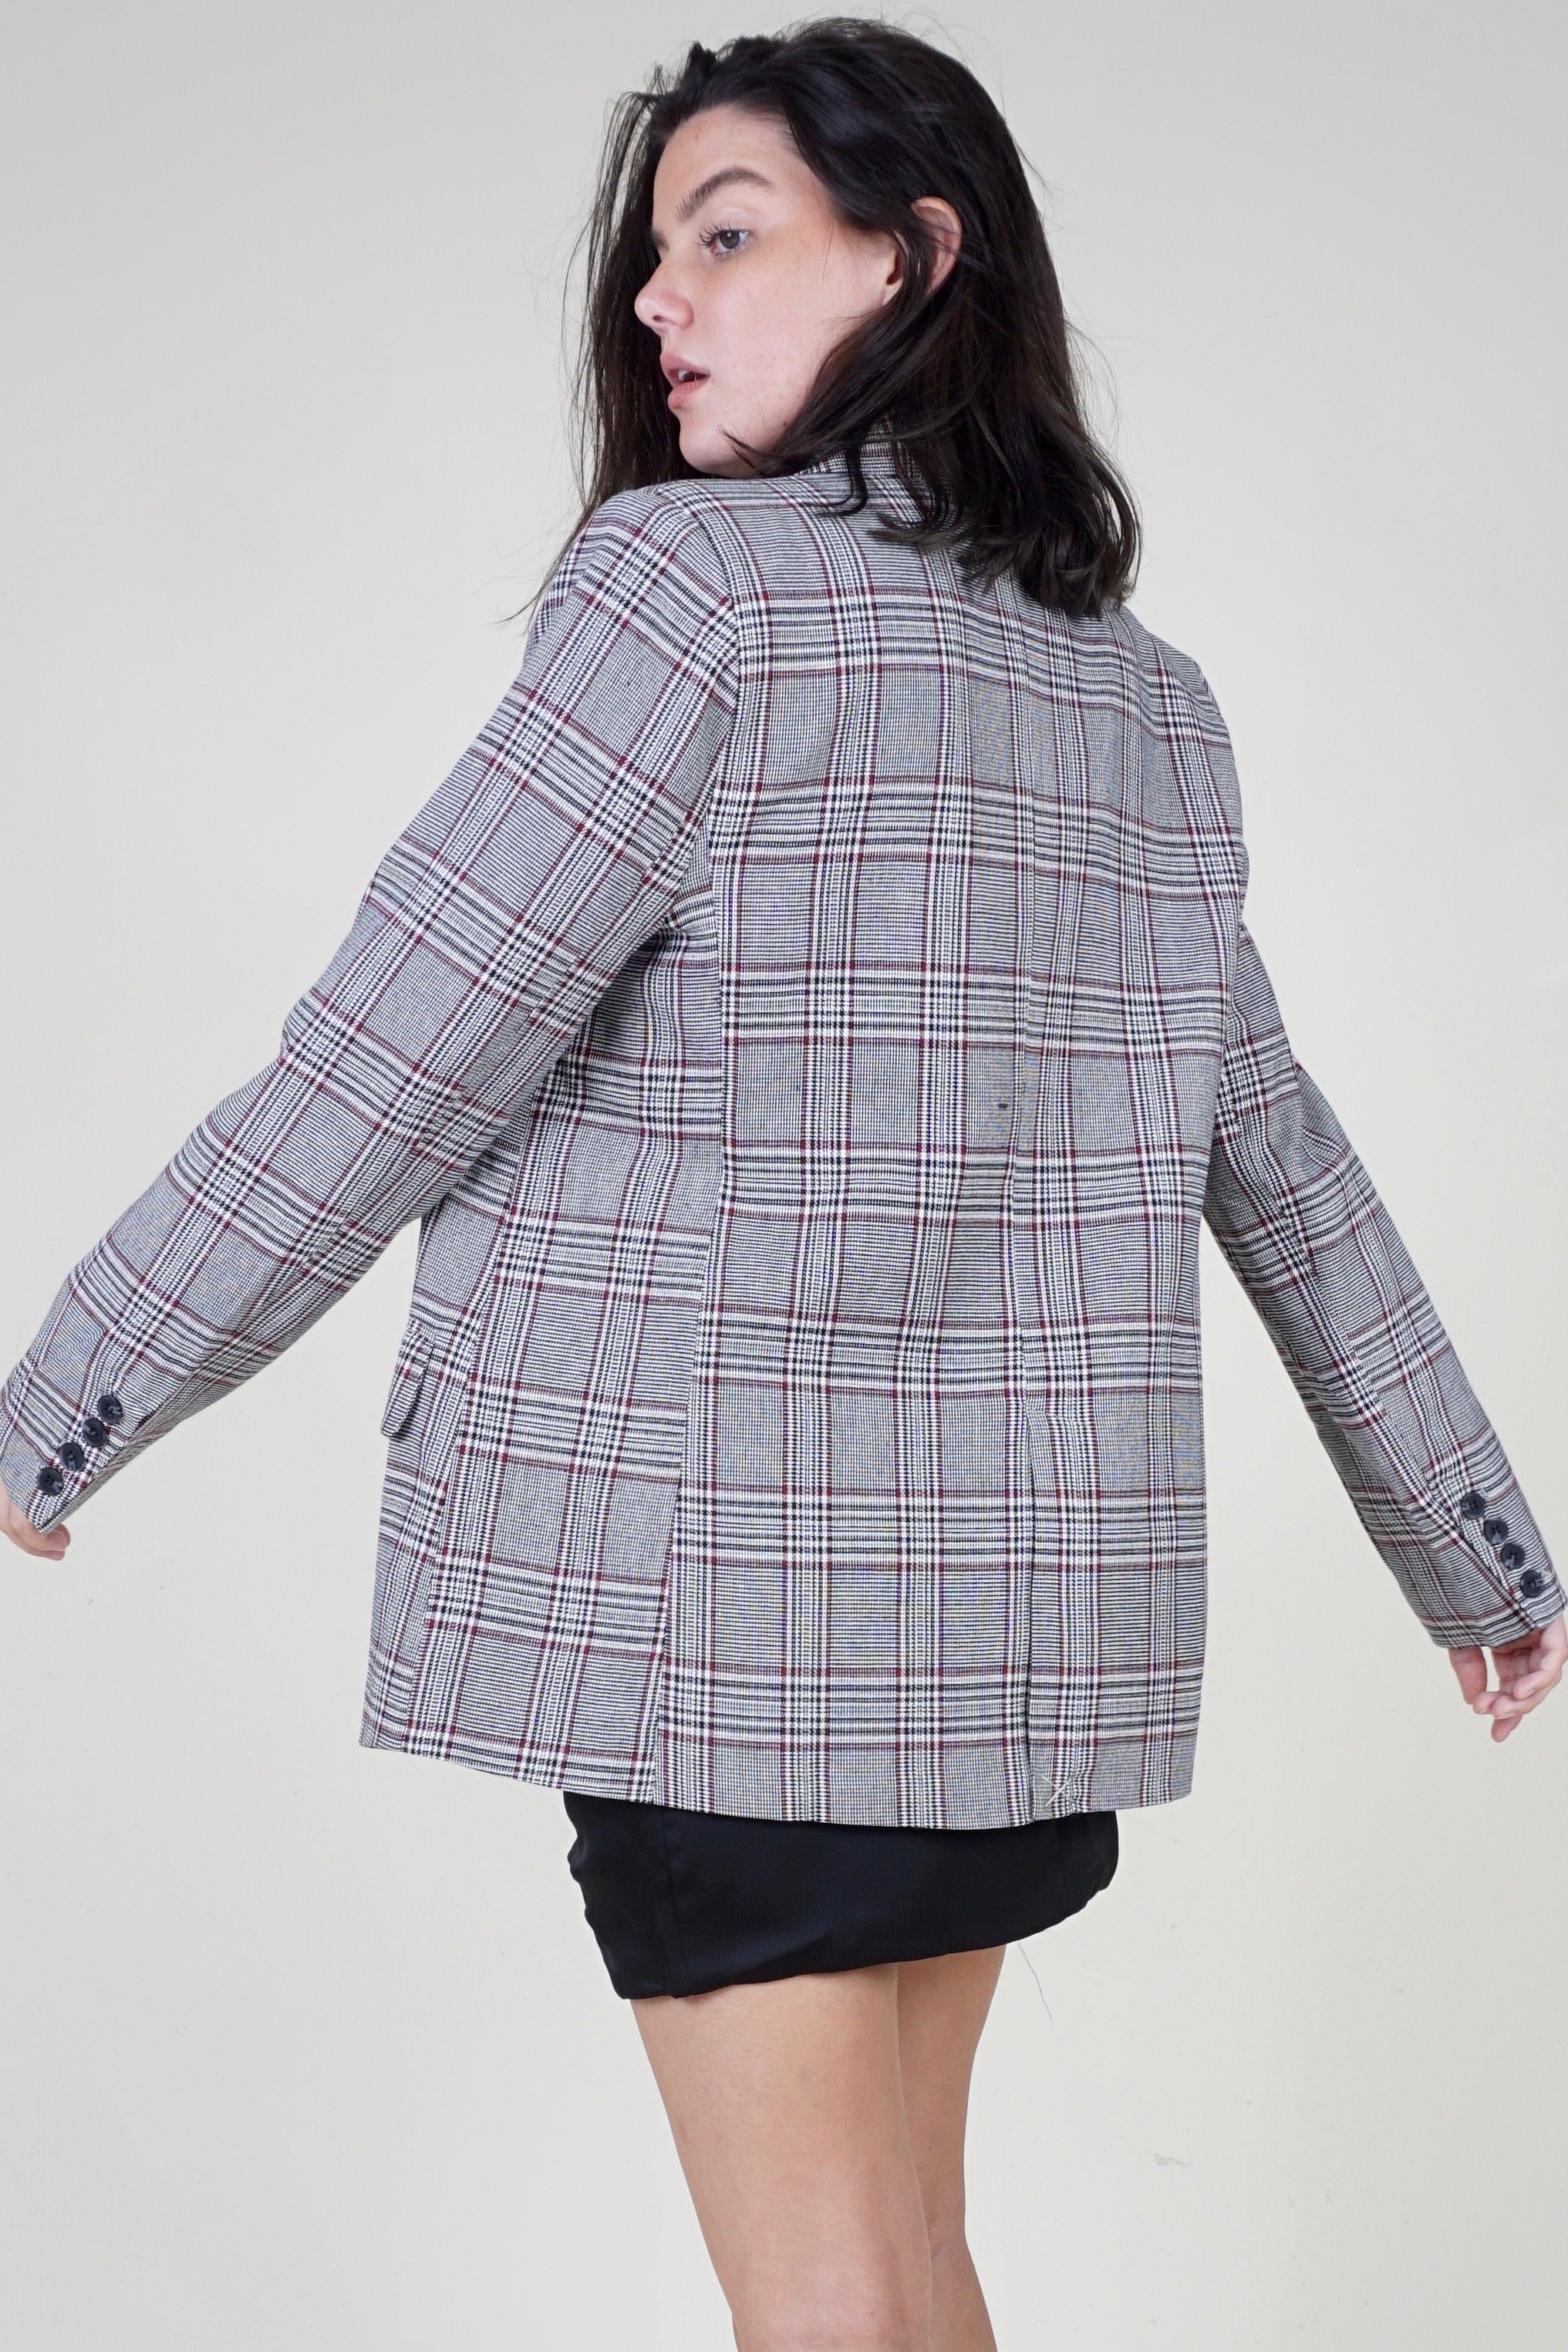 Rewind Plaid Blazer - Brightside Boutique